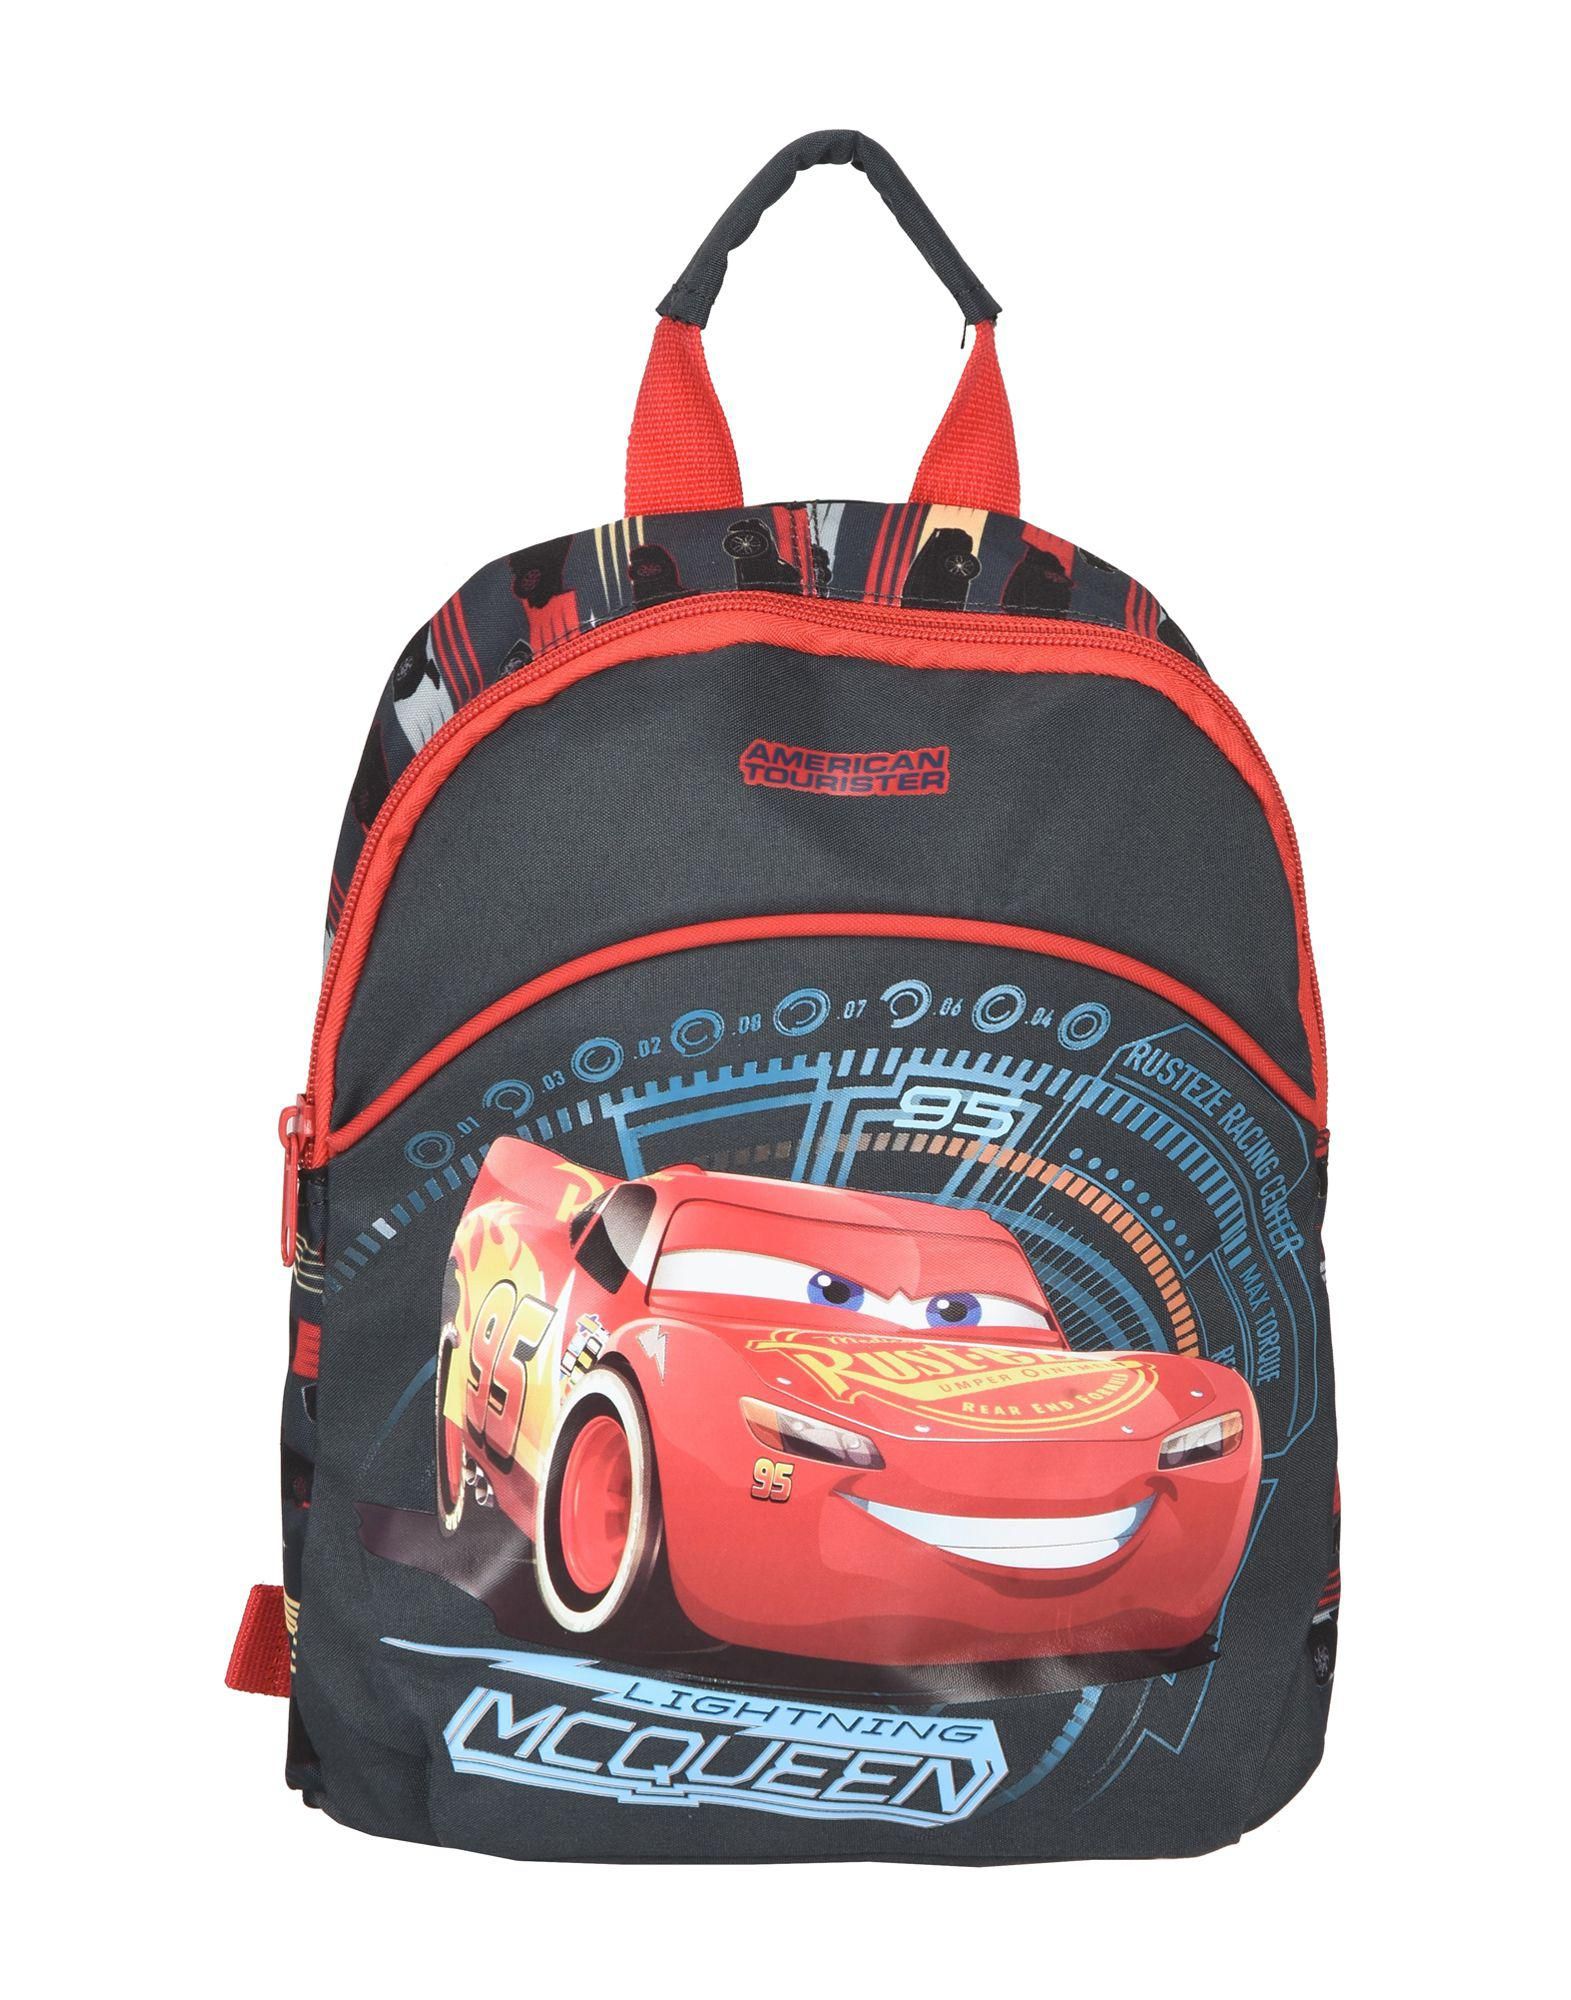 BAGS - Backpacks & Bum bags American Tourister gY9DoLK